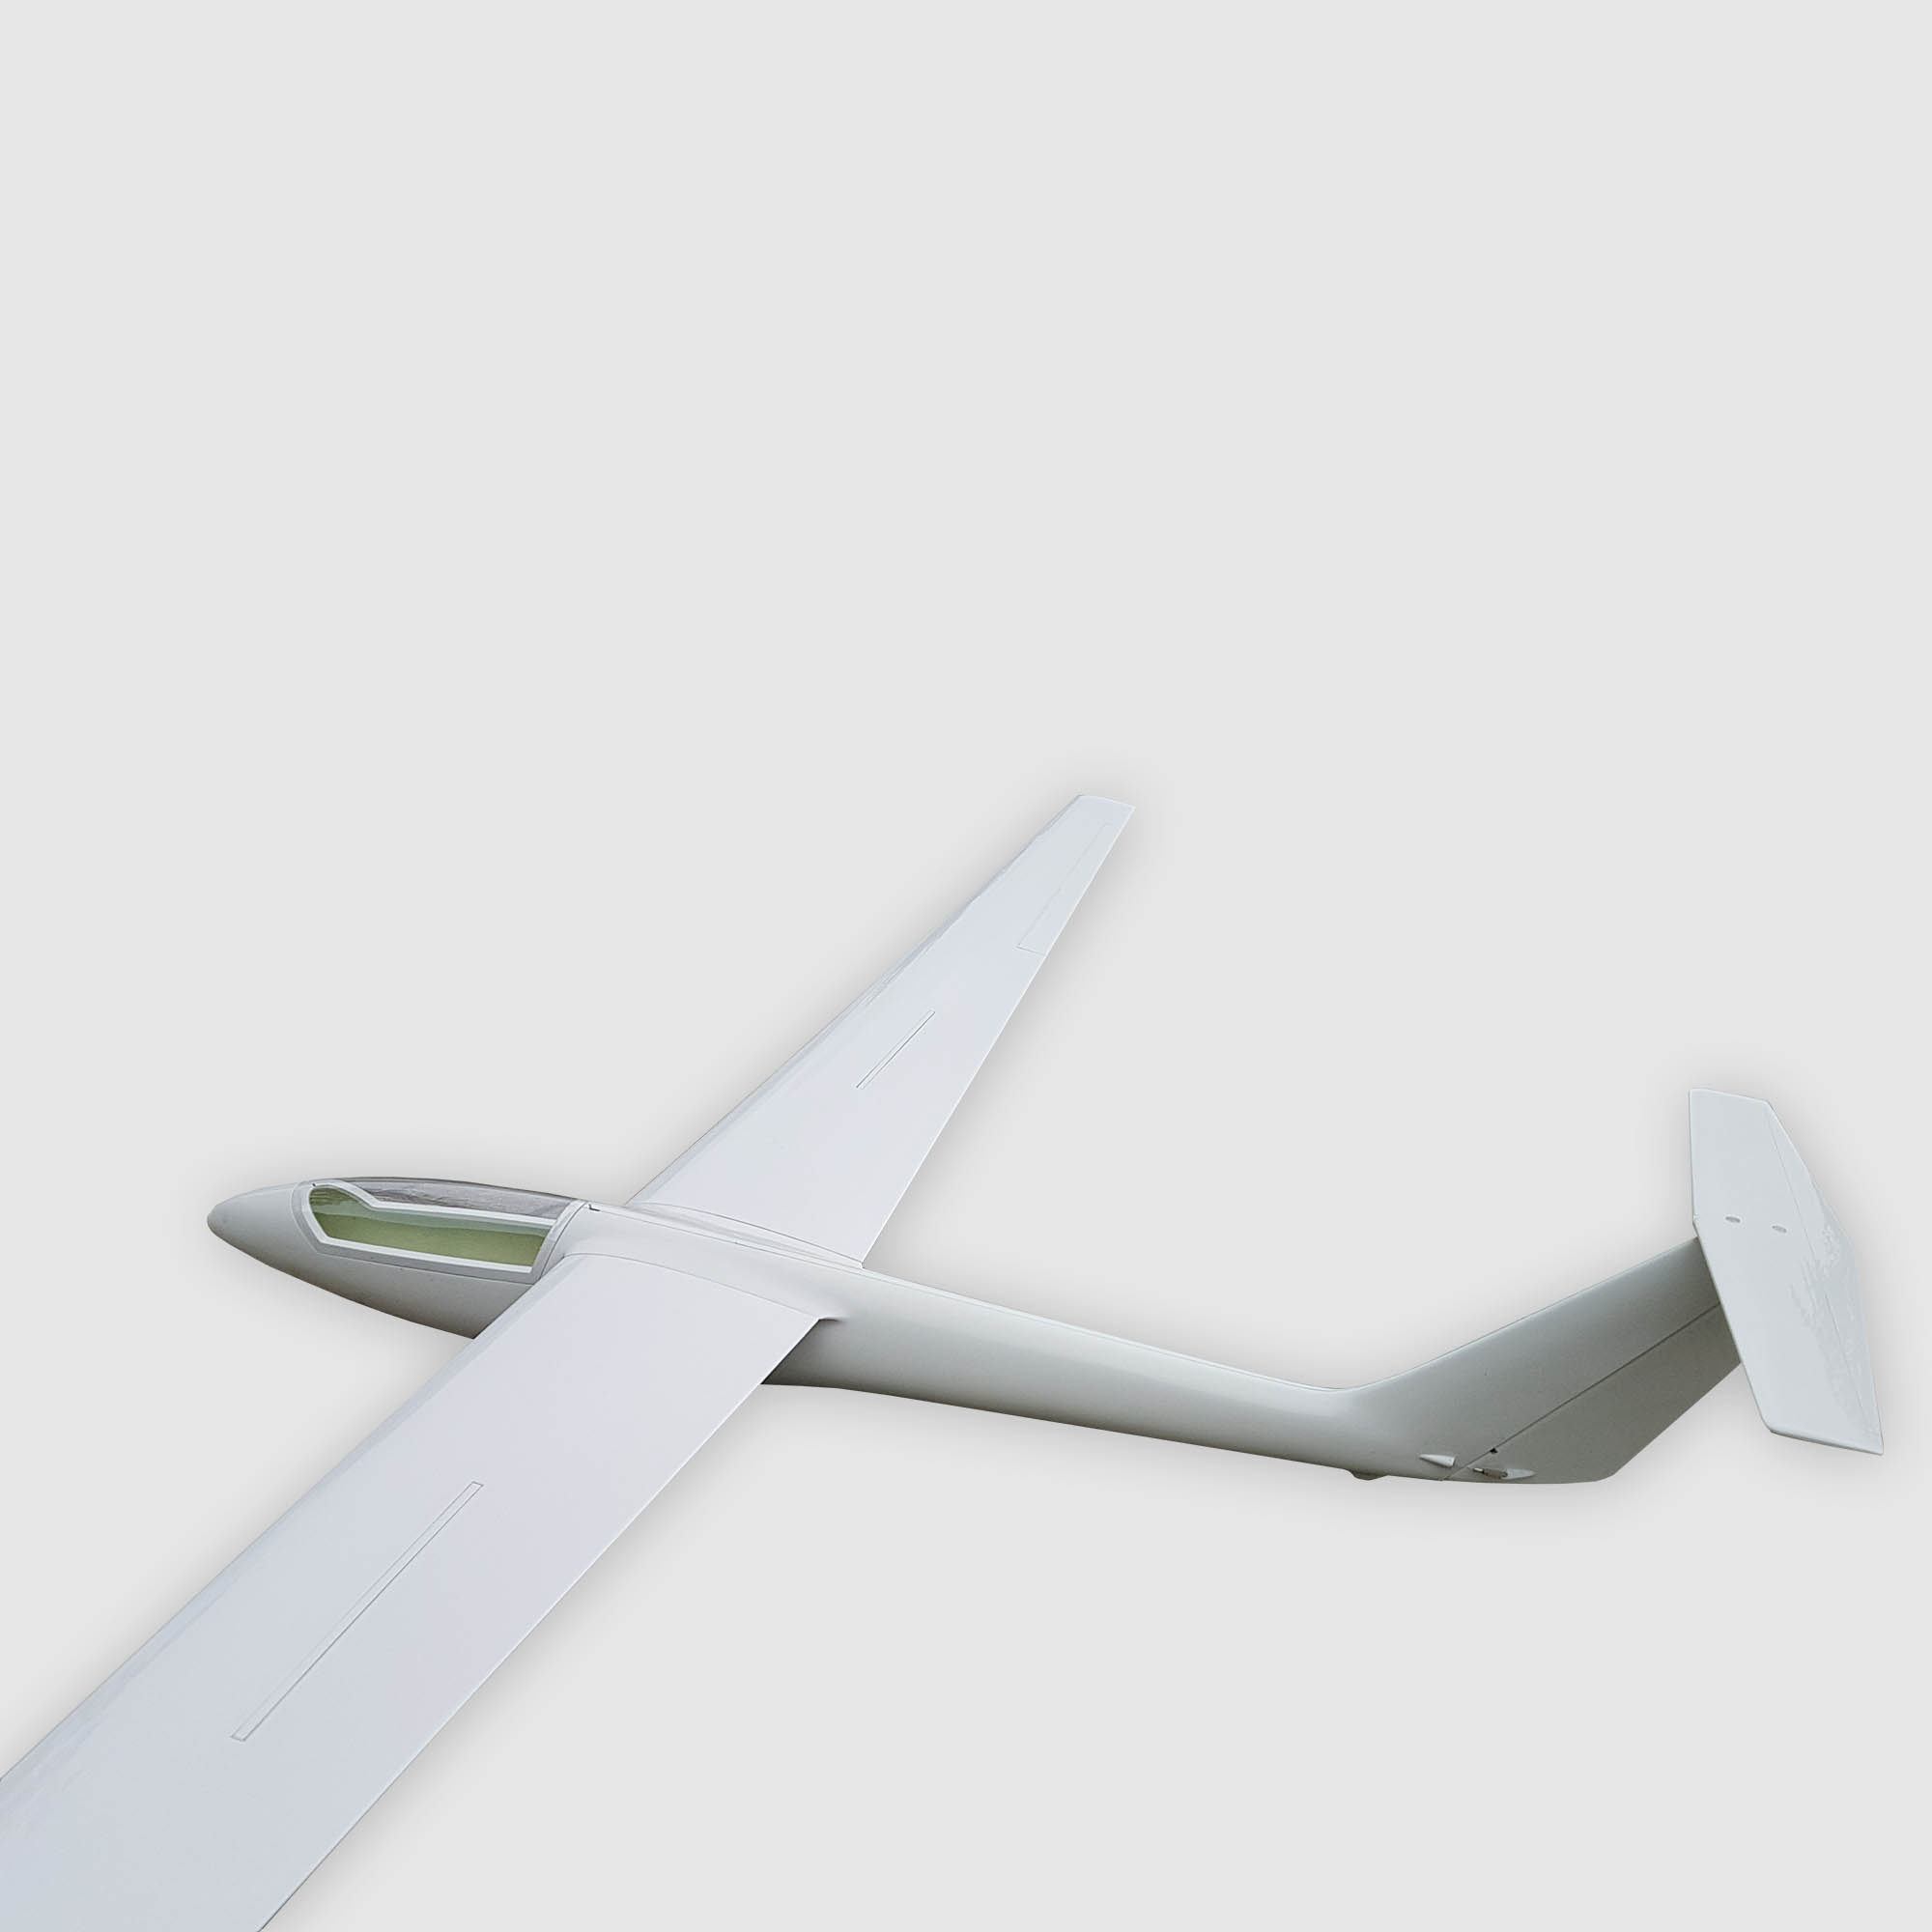 Sailplane model RM SZD-39 Cobra 17 ARF 3,4m - Image 3